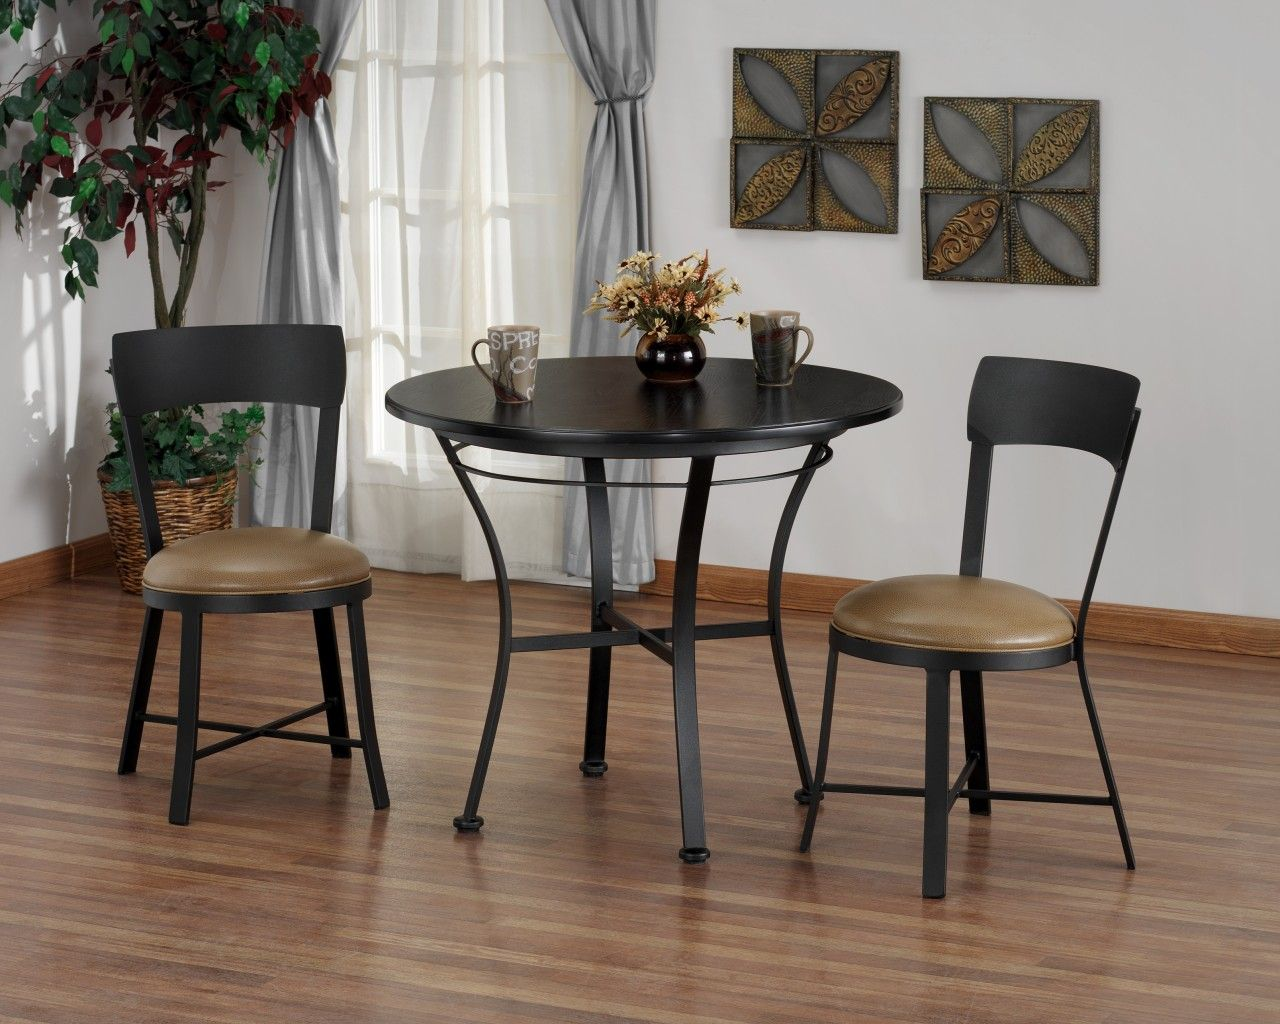 Indoor Bistro Table Chairs Indoor Bistro Table And Chairs In Uk Bistro Chair And